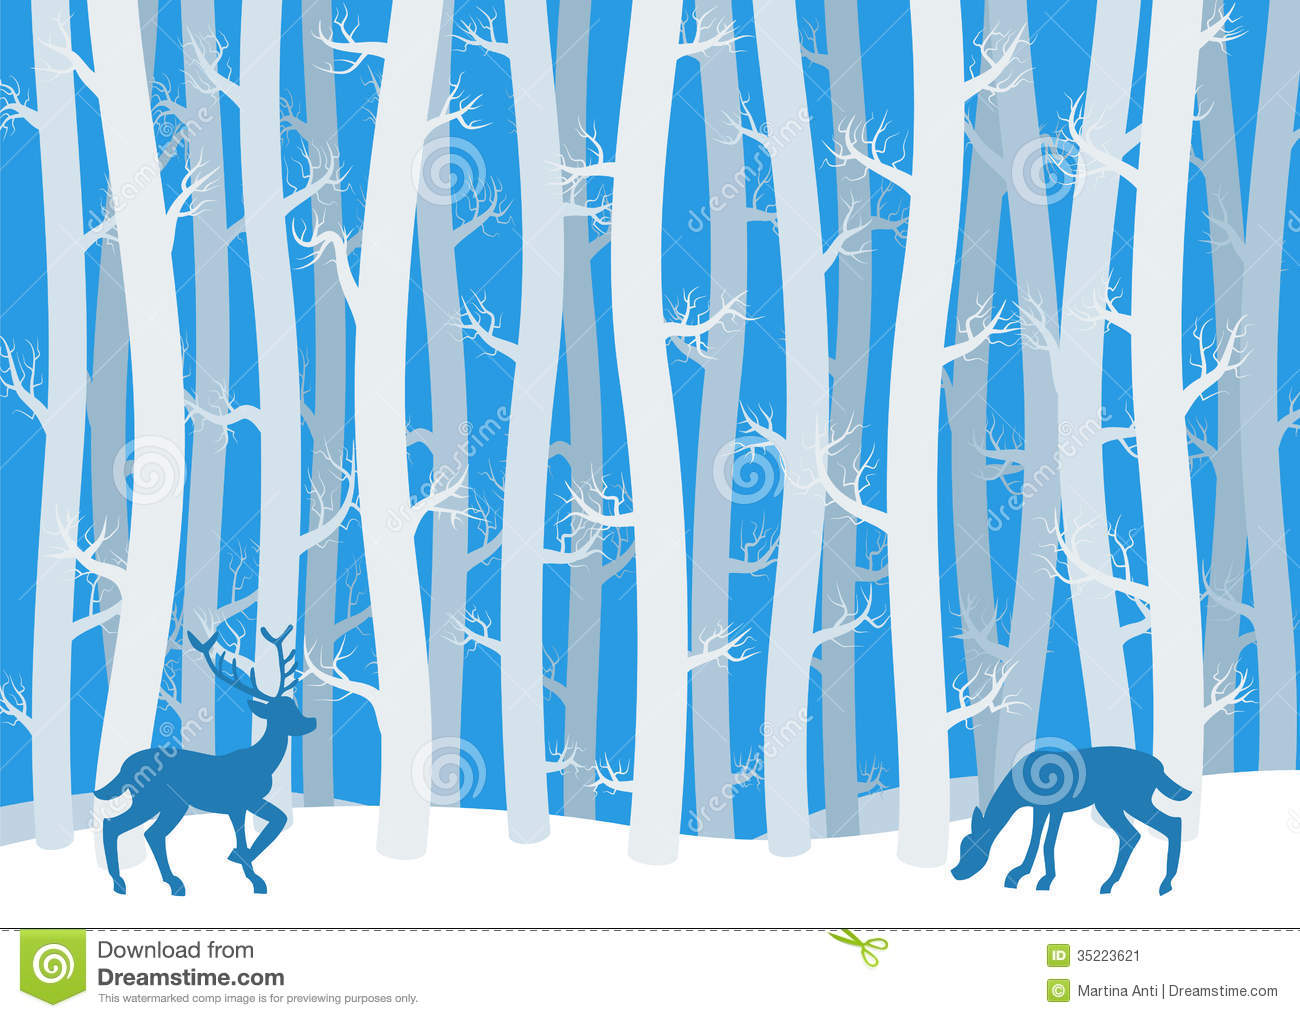 Winter forest clipart.